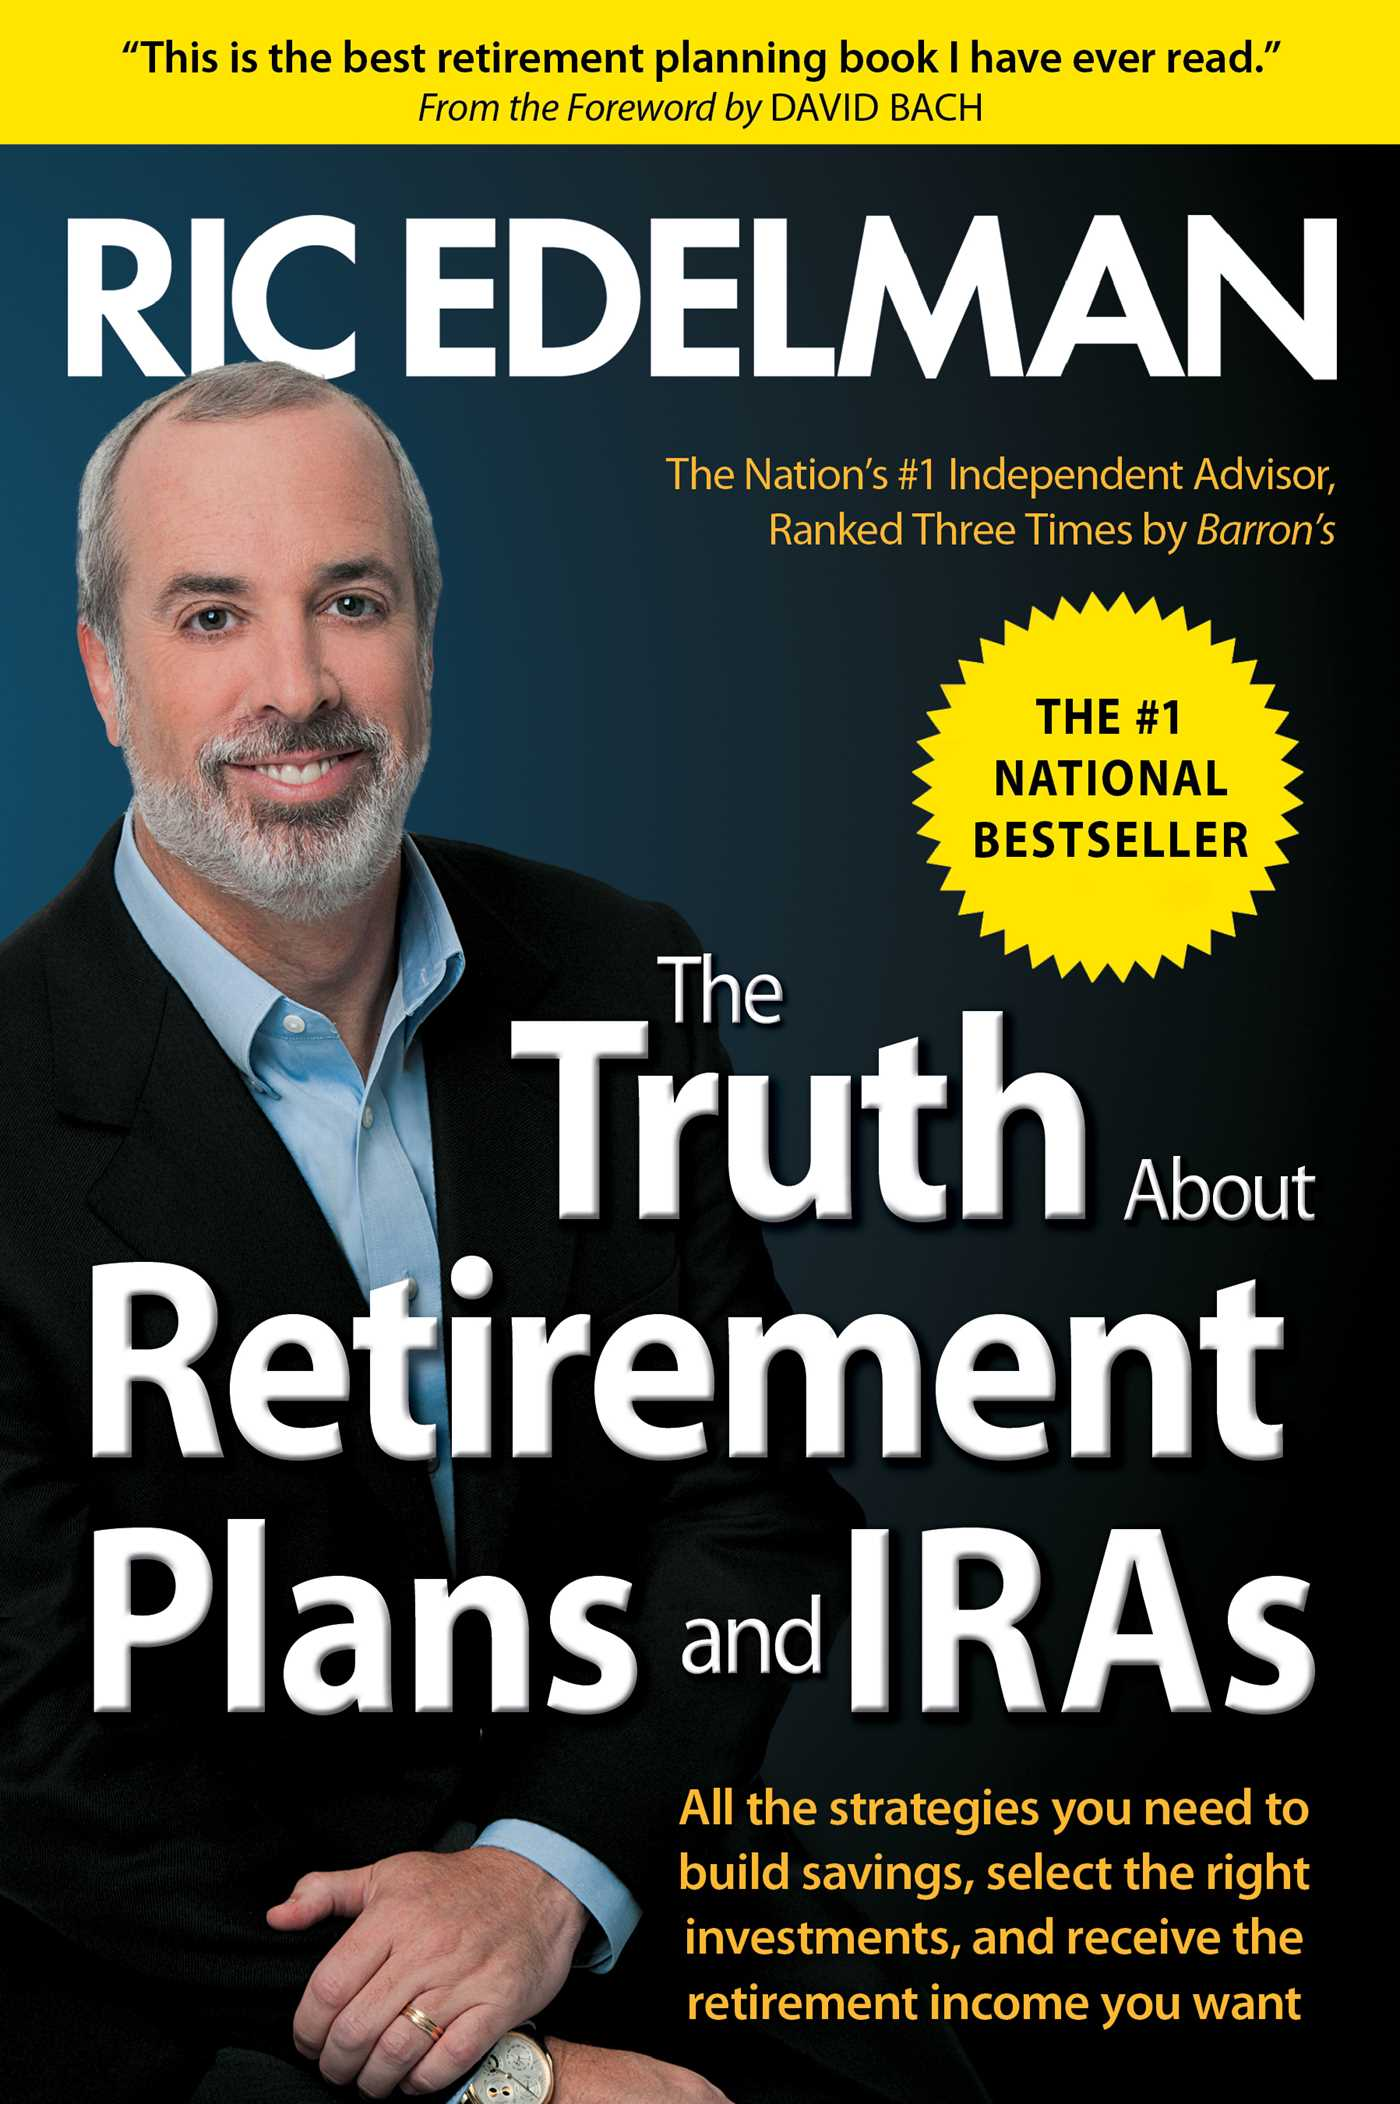 Truth-about-retirement-plans-and-iras-9781476739854_hr